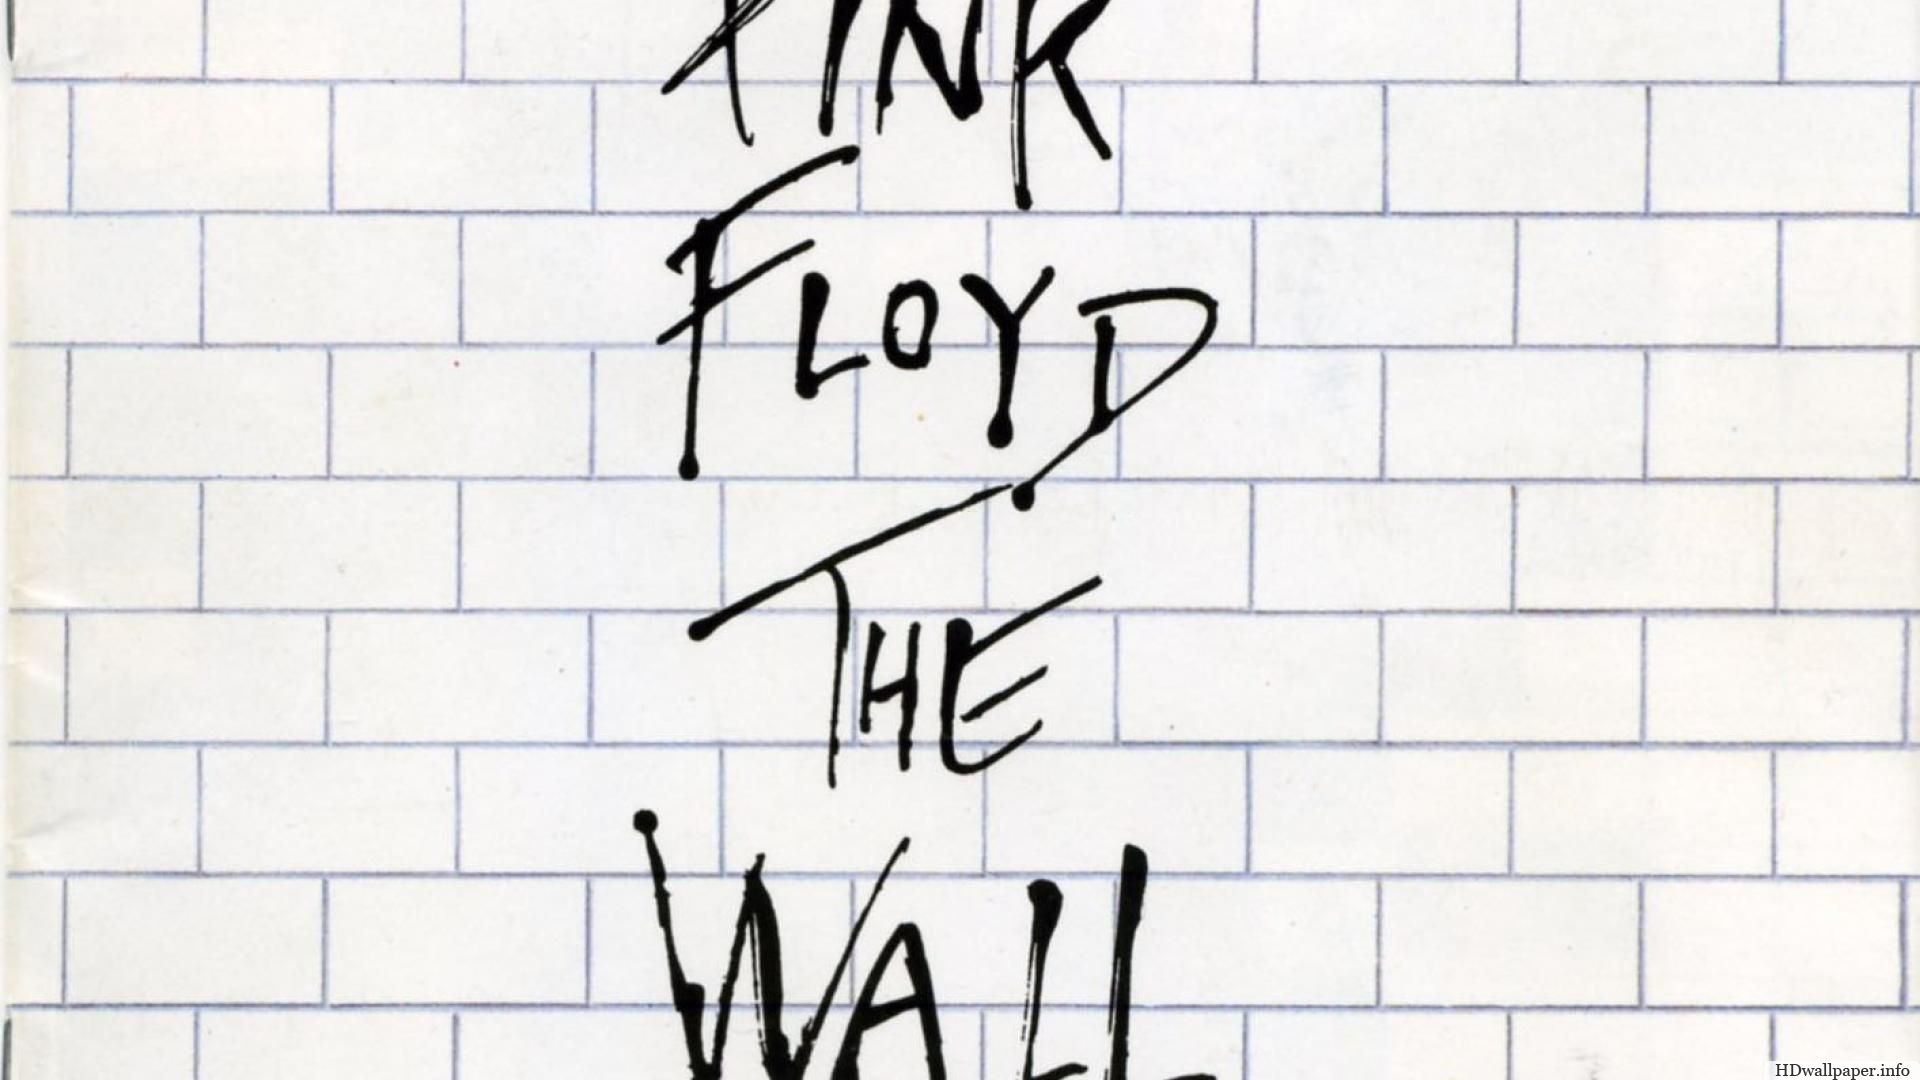 Pink Floyd The Wall Wallpaper Hd Http Hdwallpaper Info Pink Floyd The Wall Wallpaper Hd H Pink Floyd Album Covers Greatest Album Covers Pink Floyd Albums